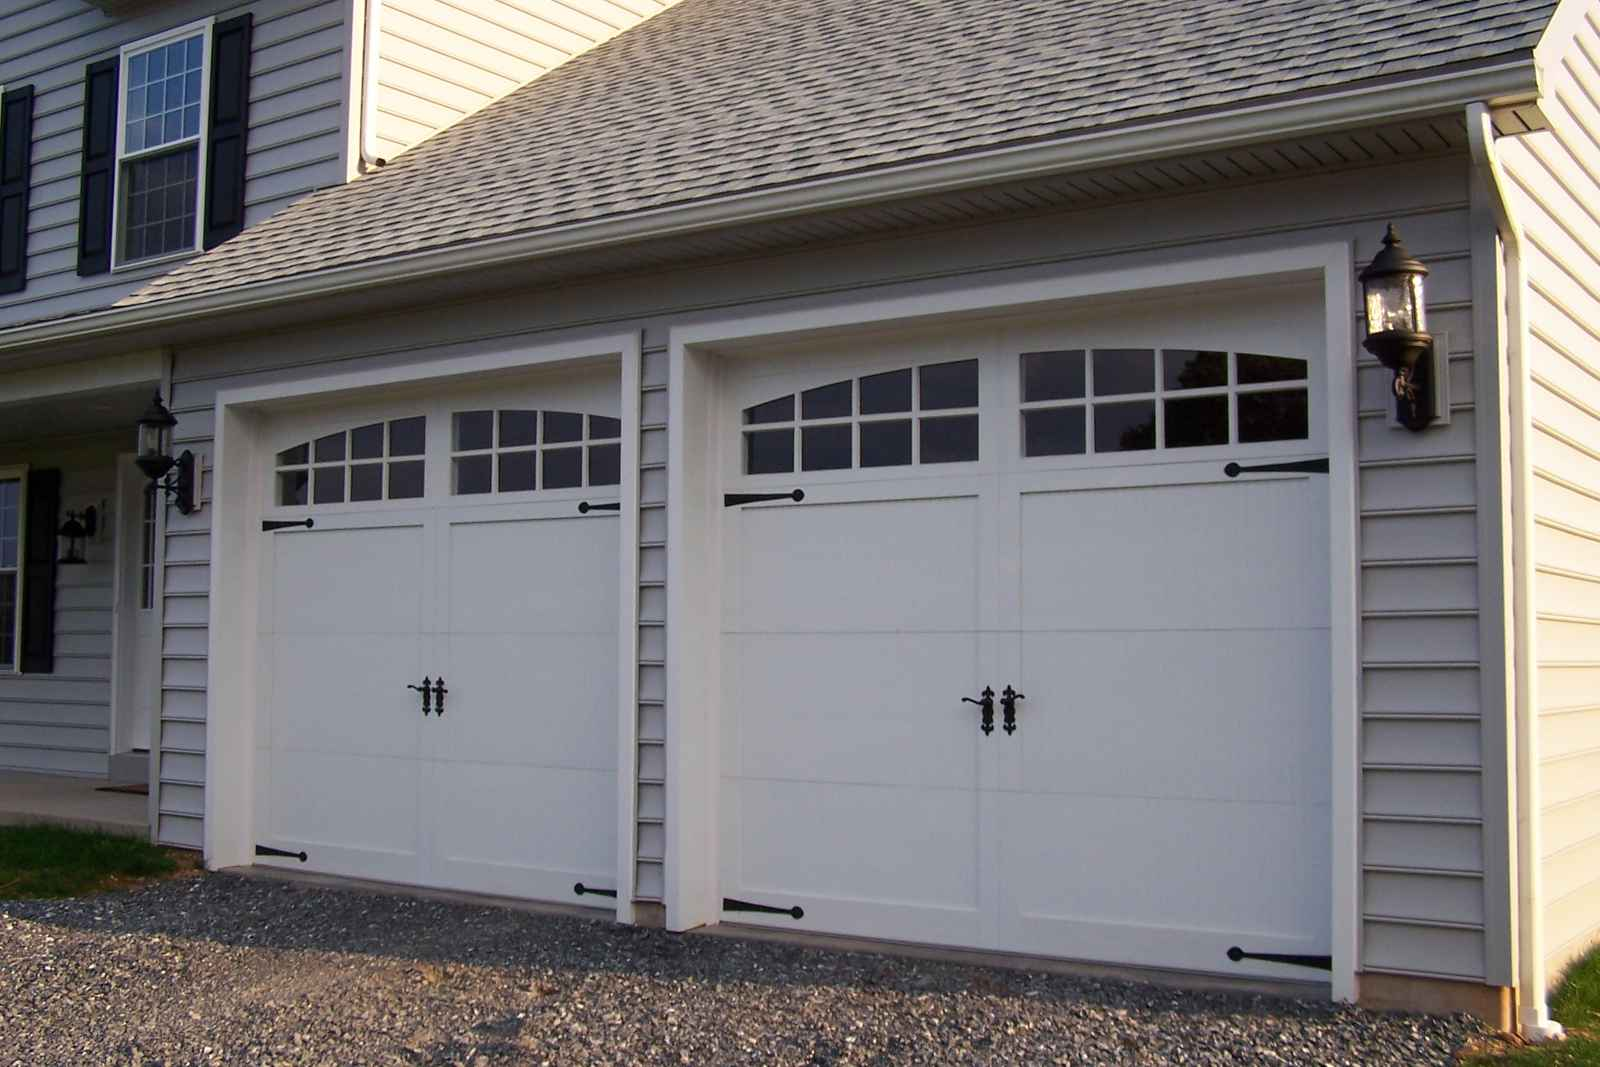 1067 #A98222  Garage Doors Hormann White Cheapest Garage Doors Sunrise Double Garage picture/photo Install Garage Doors 37091600